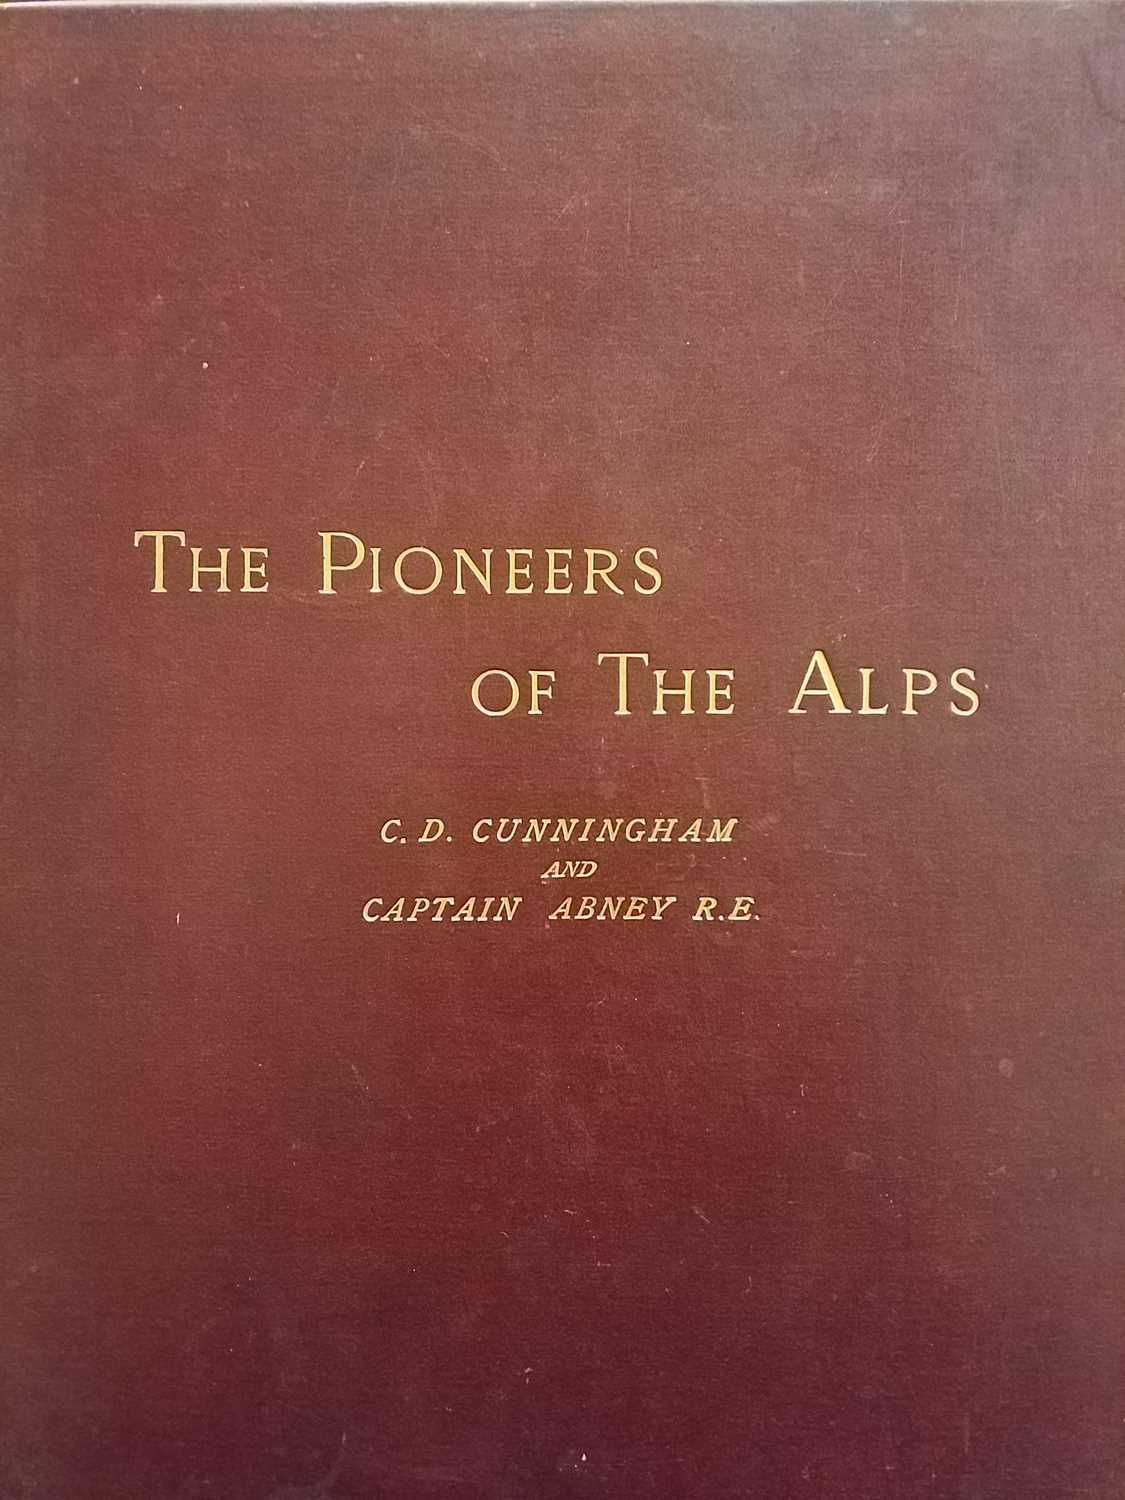 Lot 15 - Cunningham (C. D. & W. de W. Abney). The Pioneers Of The Alps, 1st edition, London: Sampson Low, Marston, Searle, and Rivington, 1887